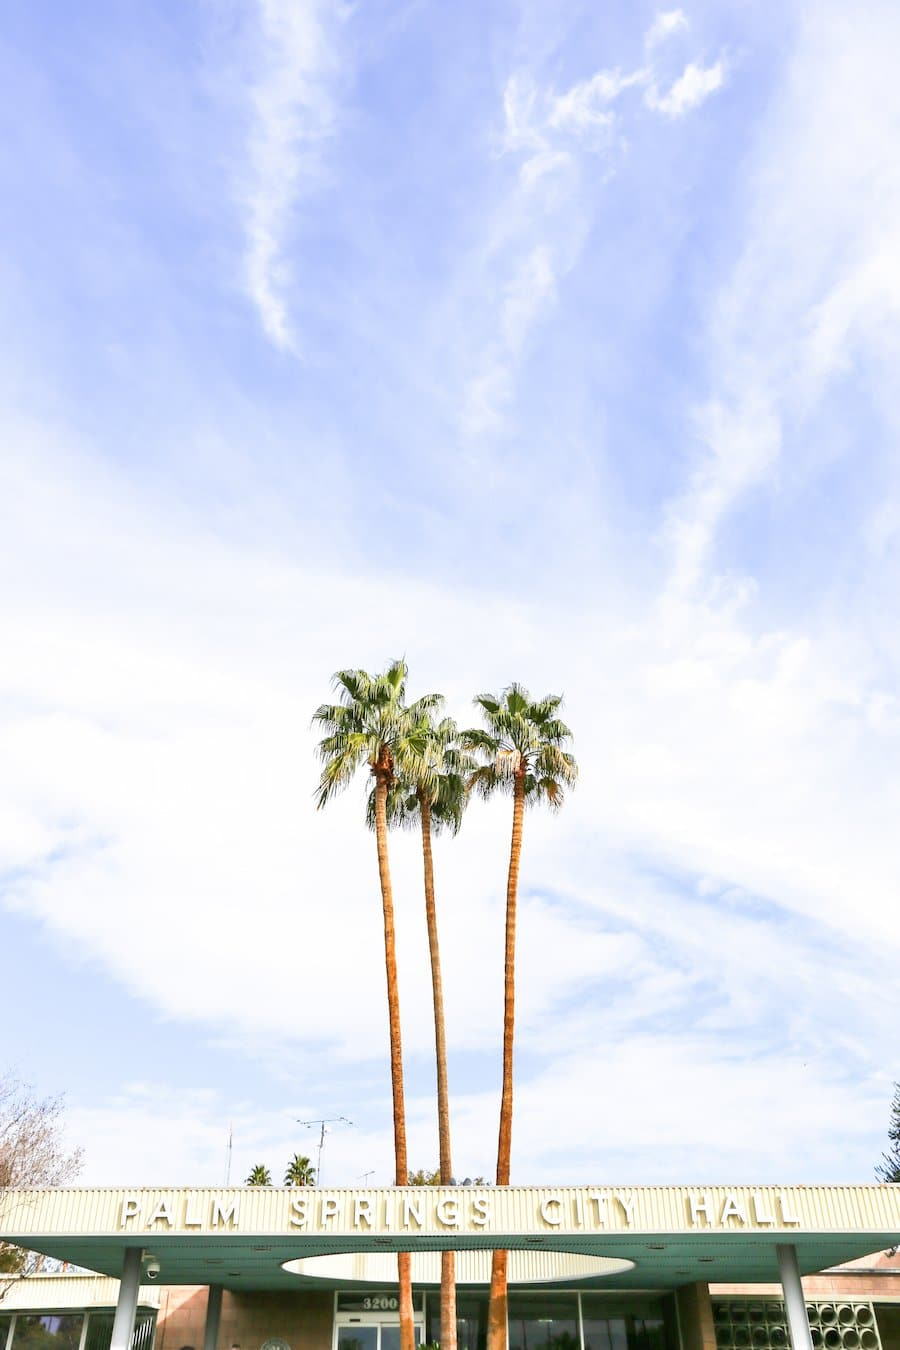 Ultimate Travel Guide to Palm Springs, Vacation and Trip Ideas, Palm Springs California, City Guide, Where to Stay in Palm Springs, What to Do, See and Eat in Palm Springs, Weekend Guide, Palm Springs City Hall, Midcentury Architecture, Instagram Spots